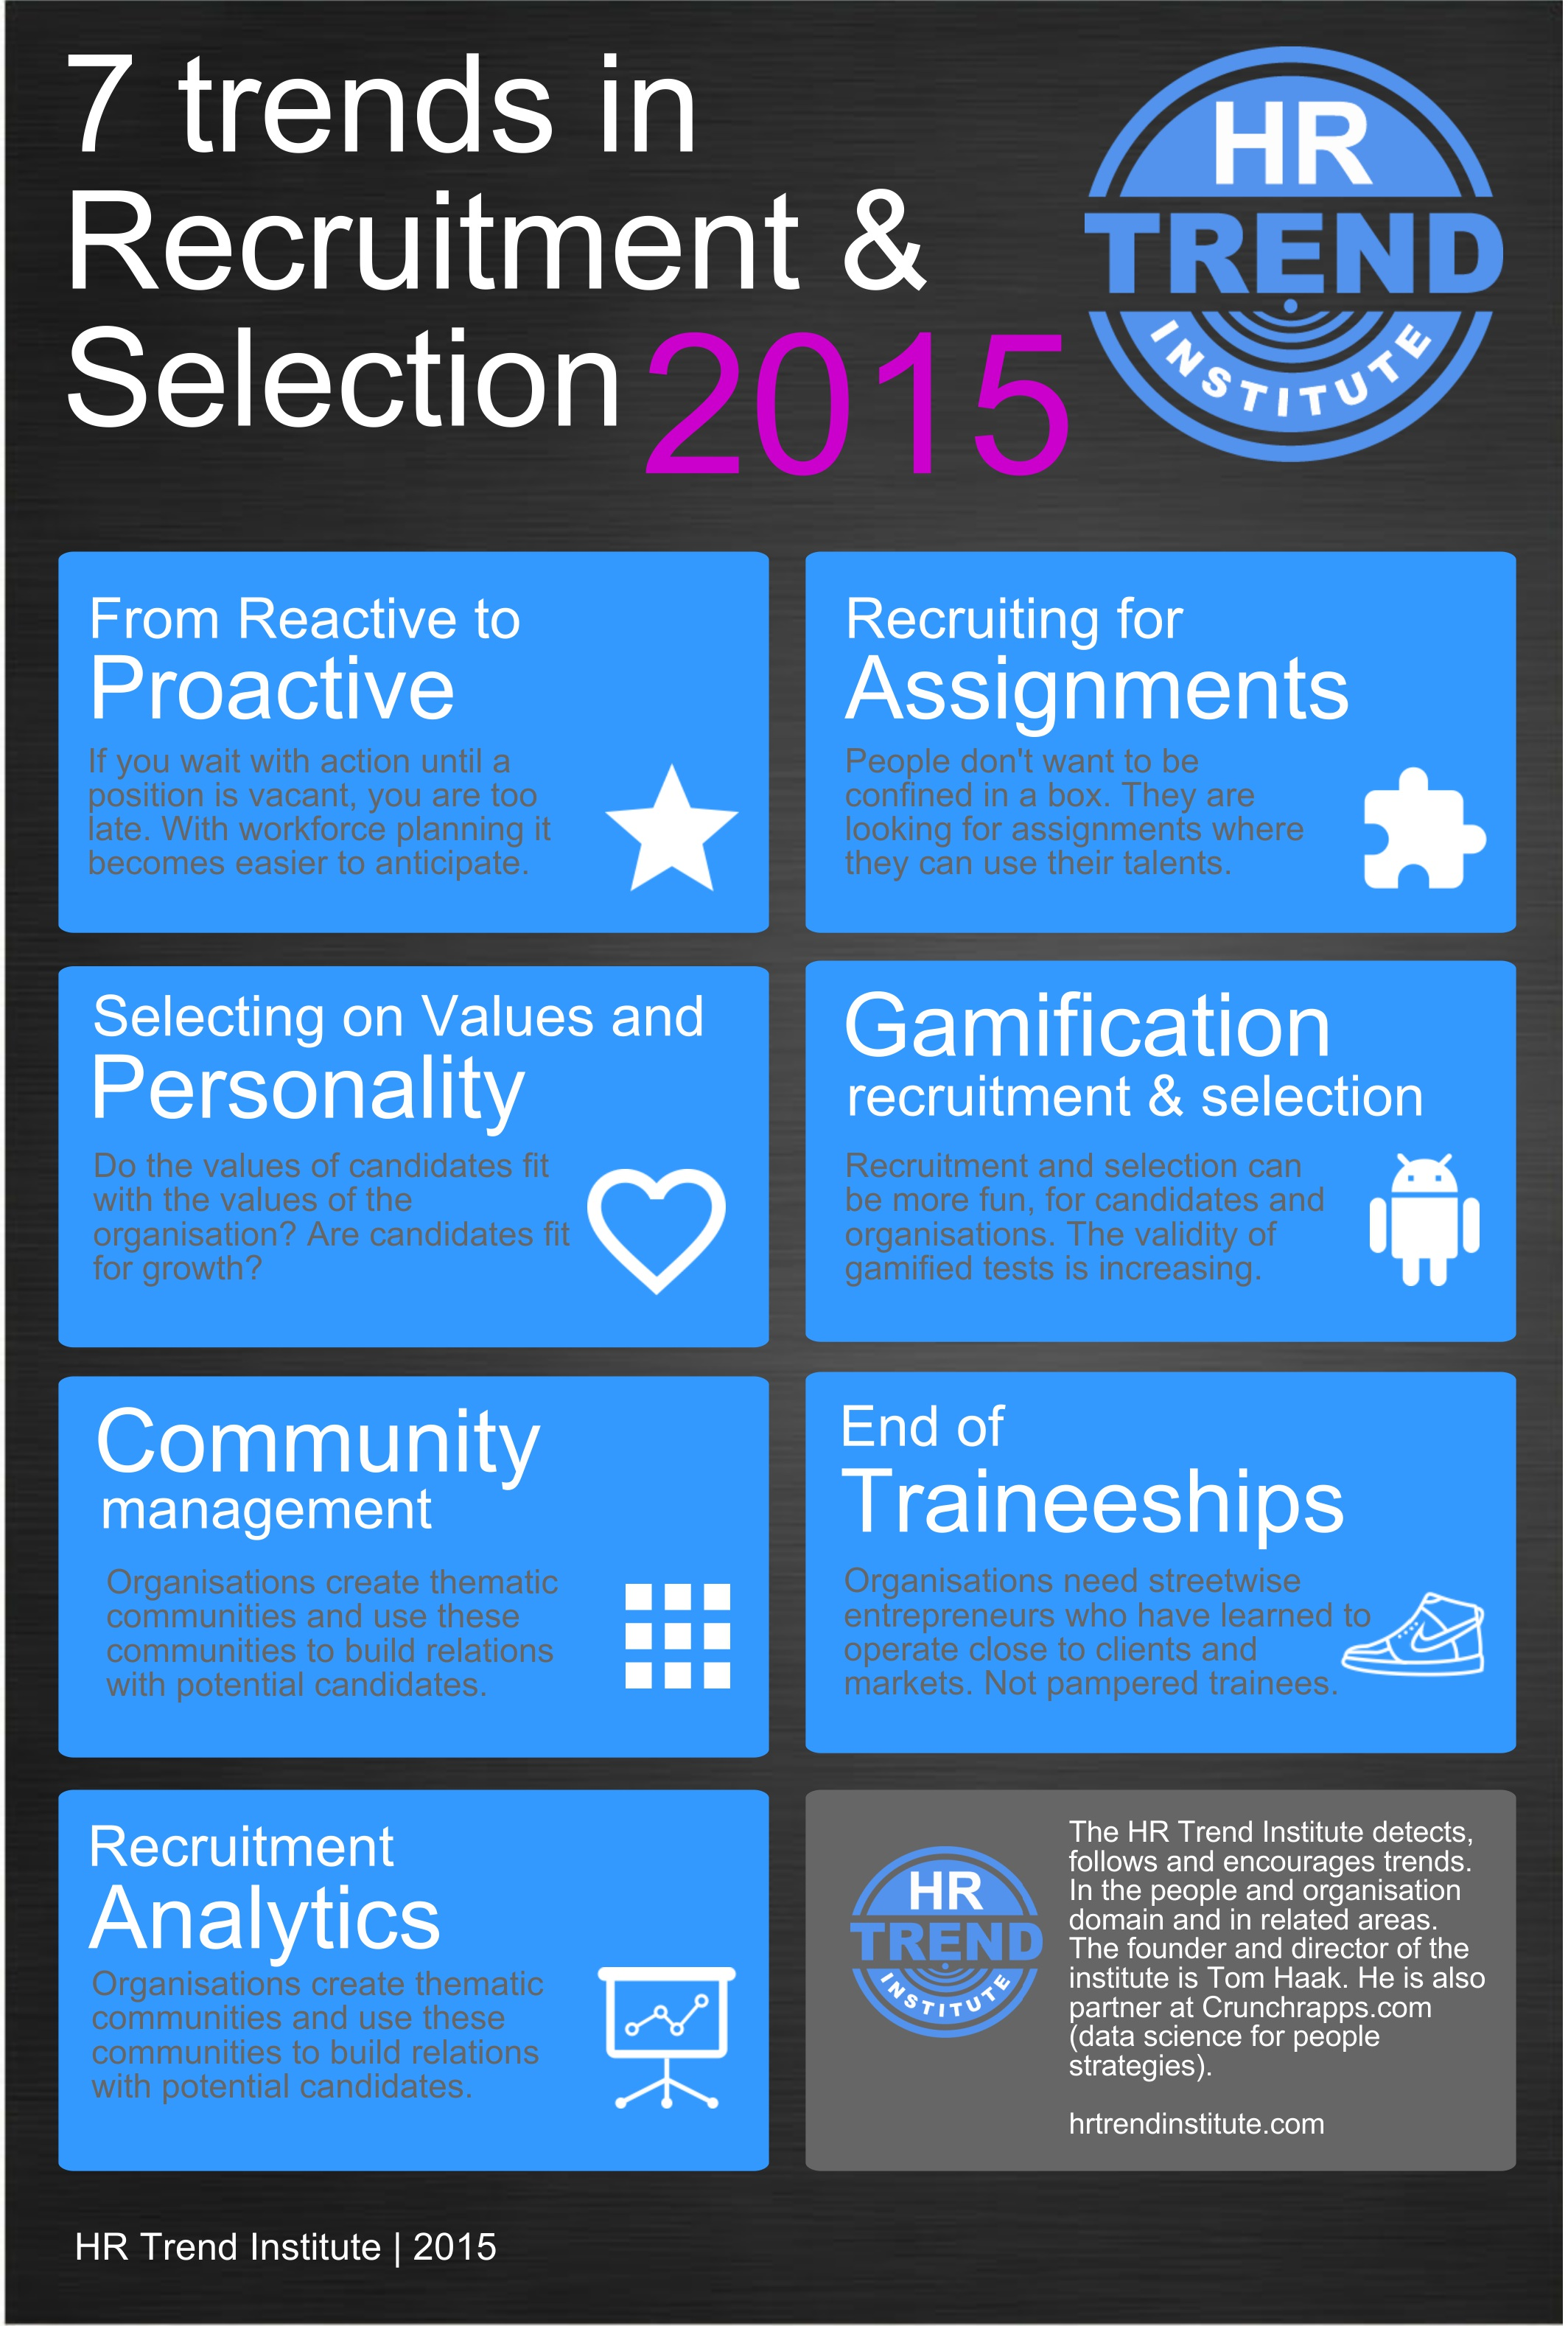 Trends in recruitment and selection new infographic  HR